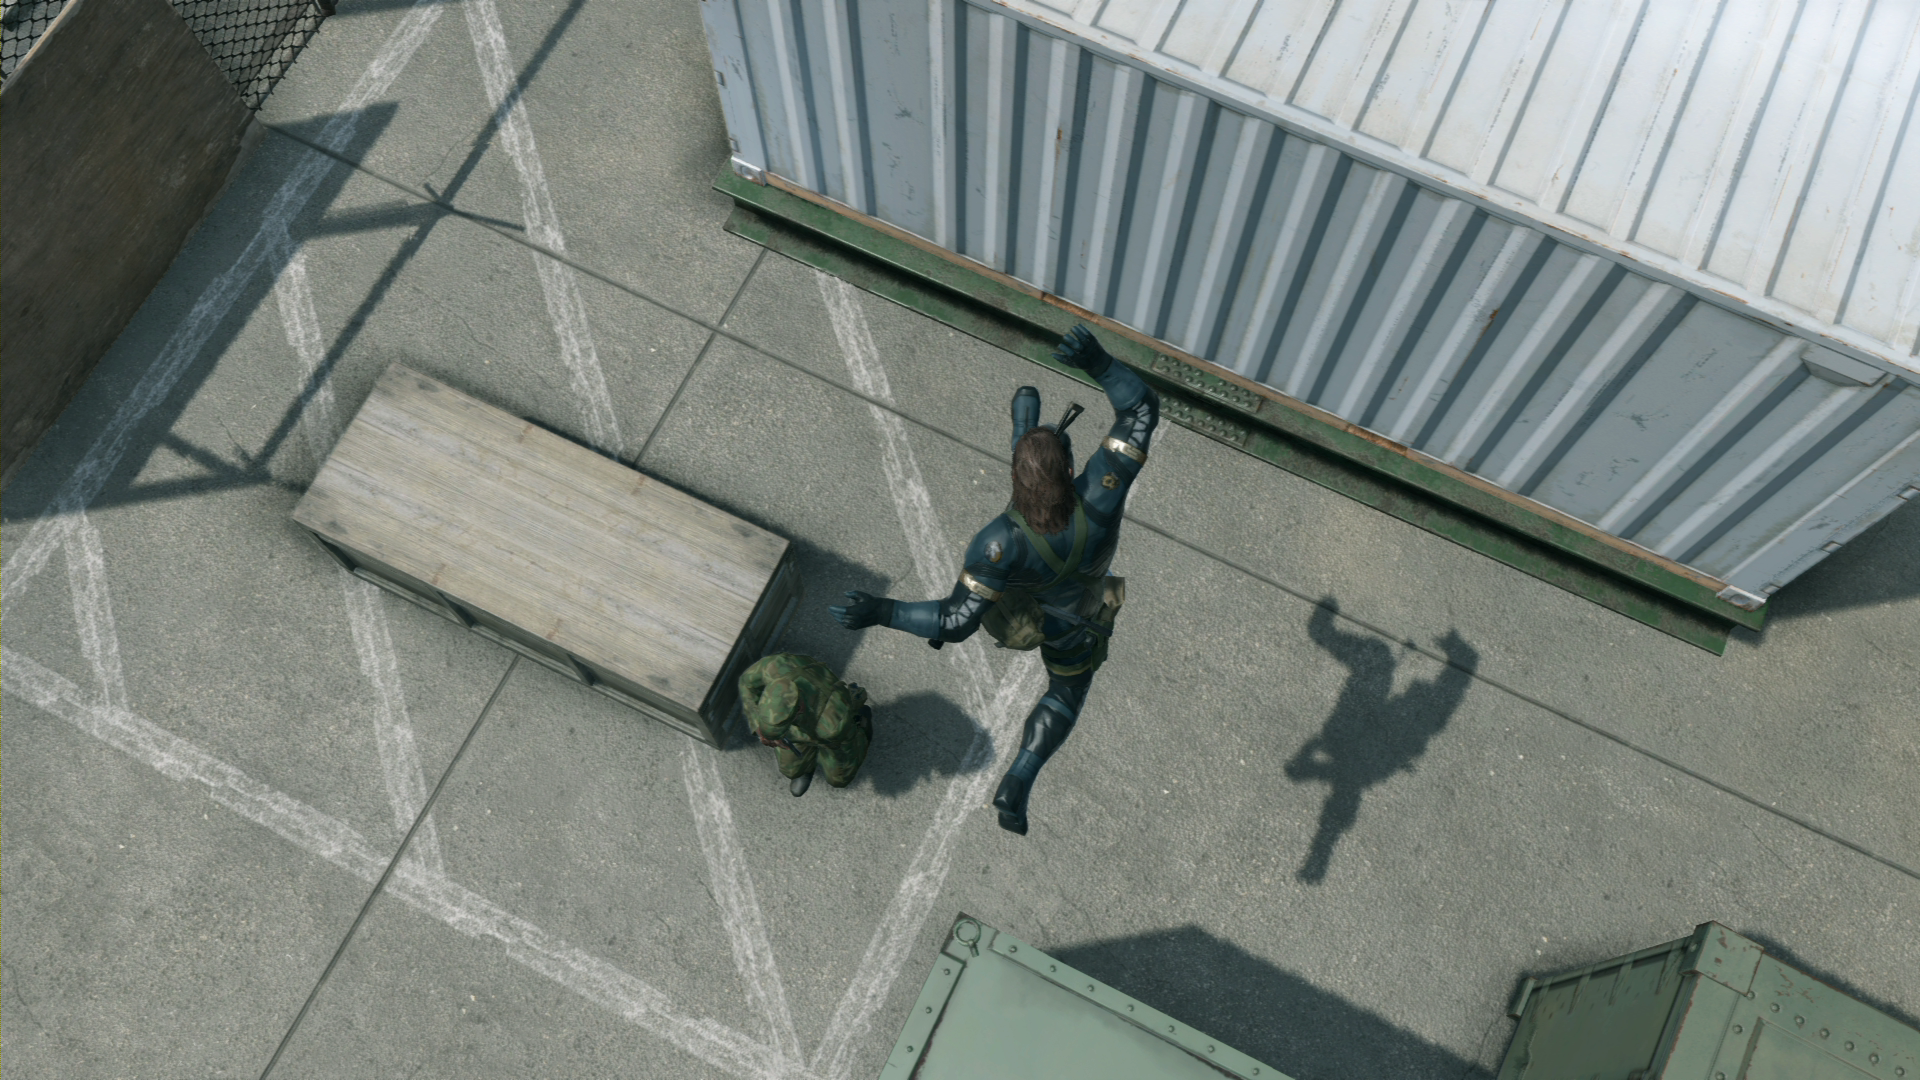 Metal Gear Solid V: Ground Zeroes image 2